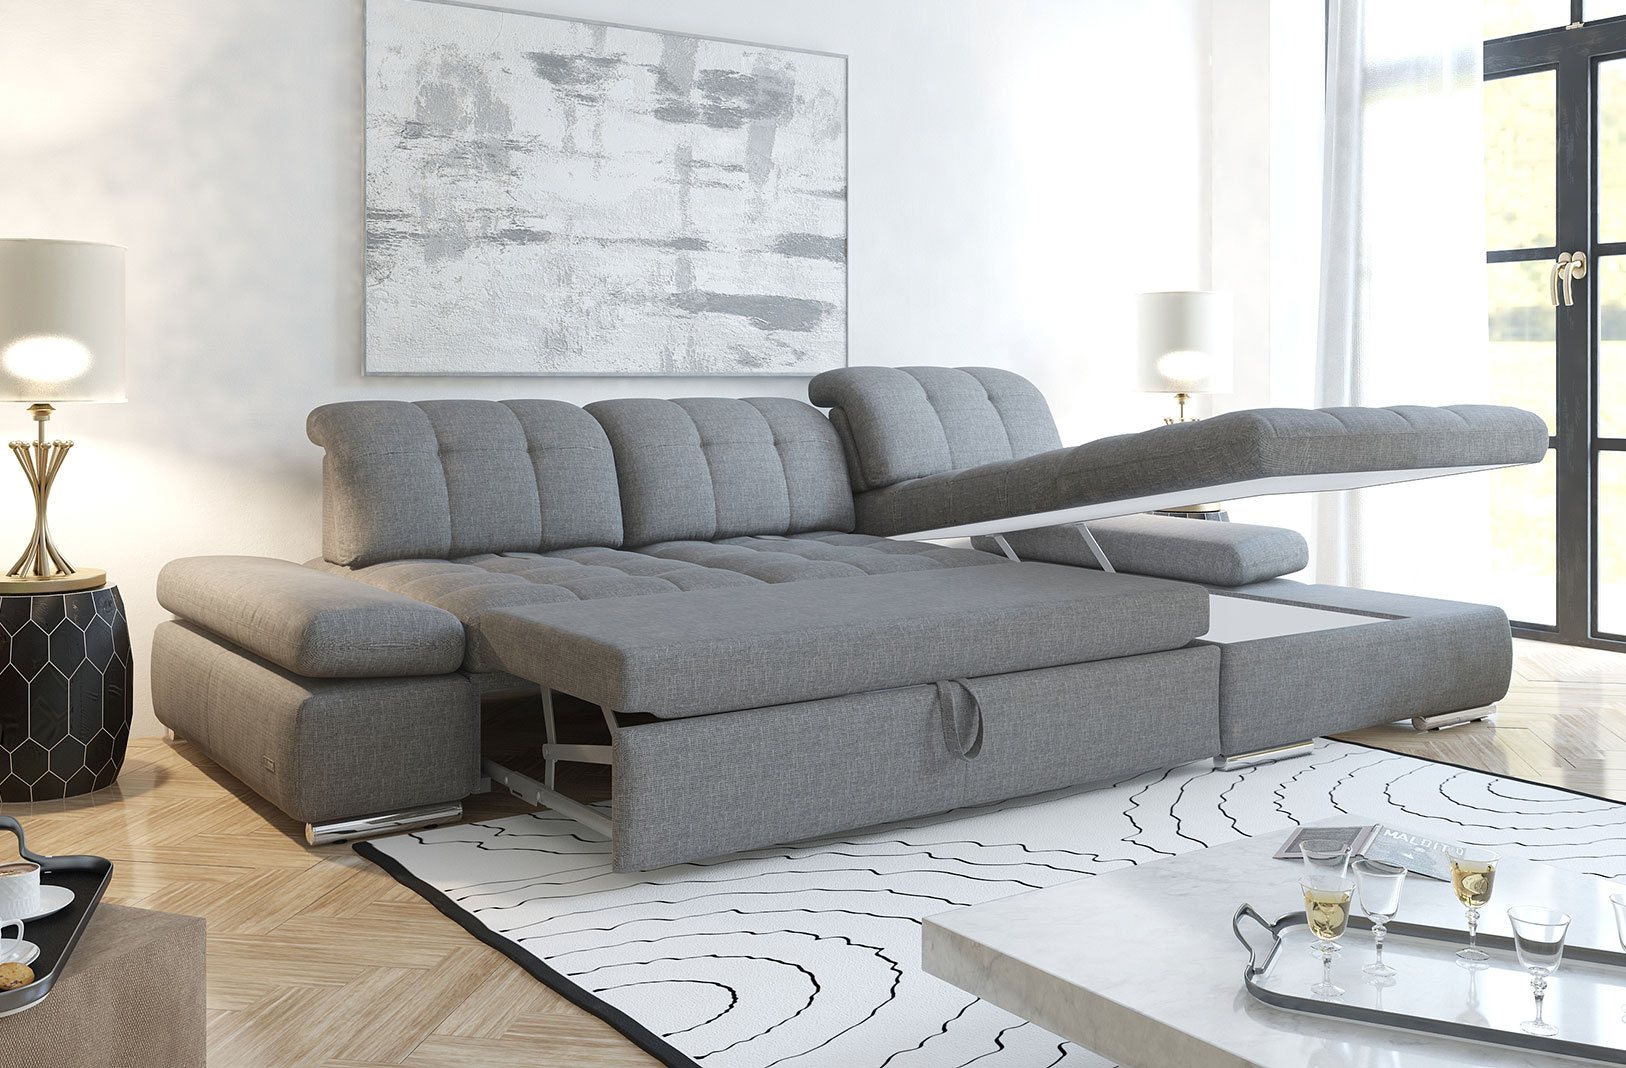 sofa grau beliani tufted fabric sofa gray with sofa grau gallery of sofa weiss grau big with. Black Bedroom Furniture Sets. Home Design Ideas